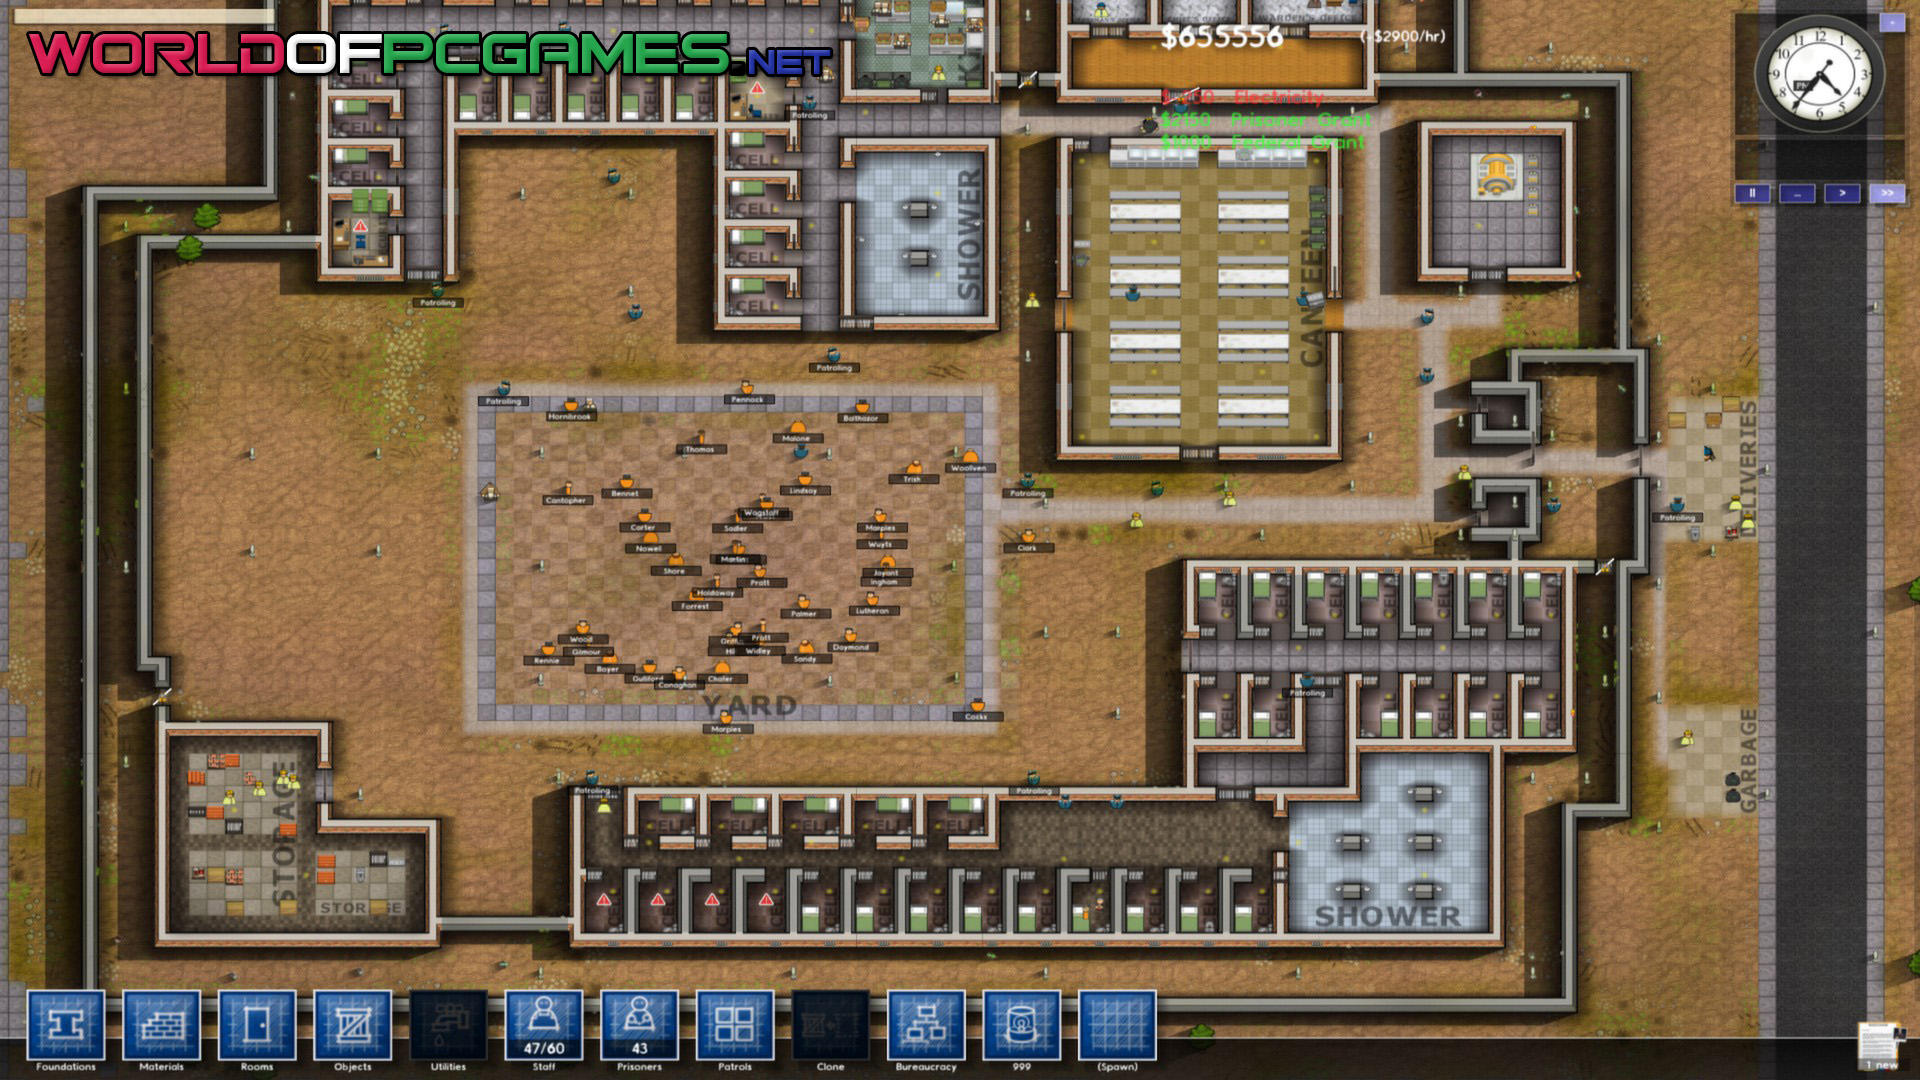 Prison Architect Free Download By Worldofpcgames.net